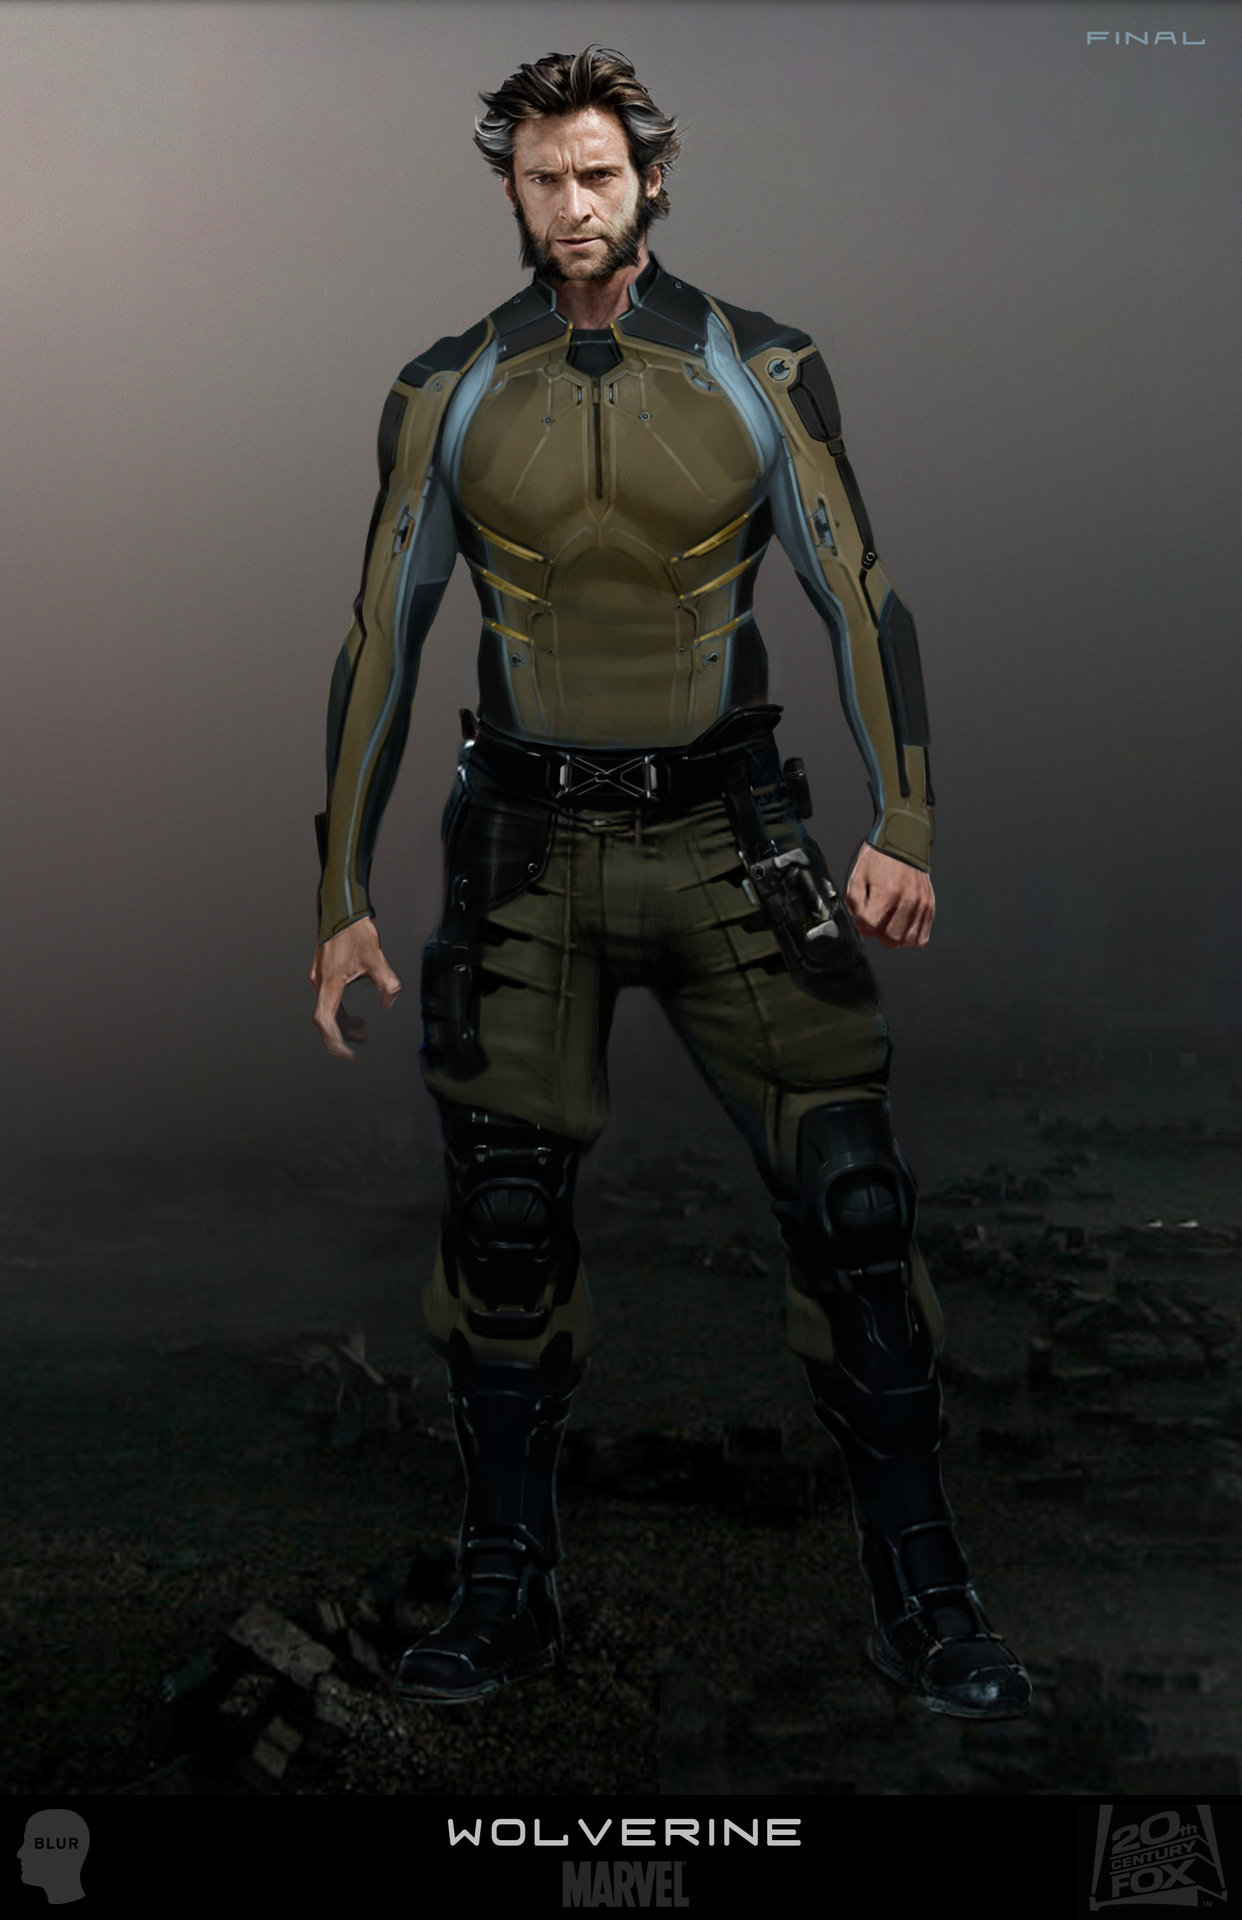 x-men days of future past wolverine concept art joshua james (1)